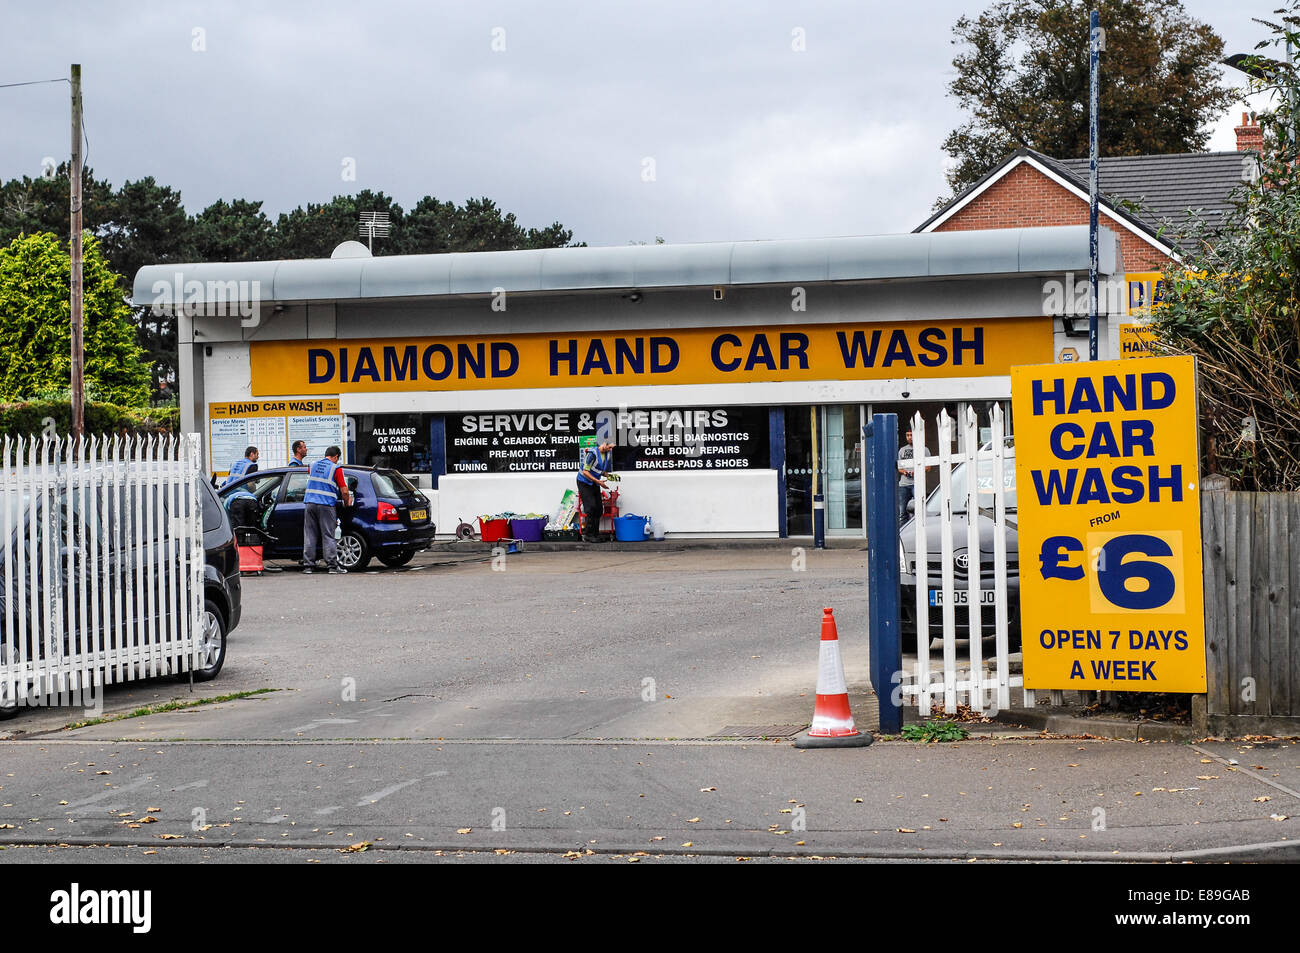 Hand car wash business - Stock Image